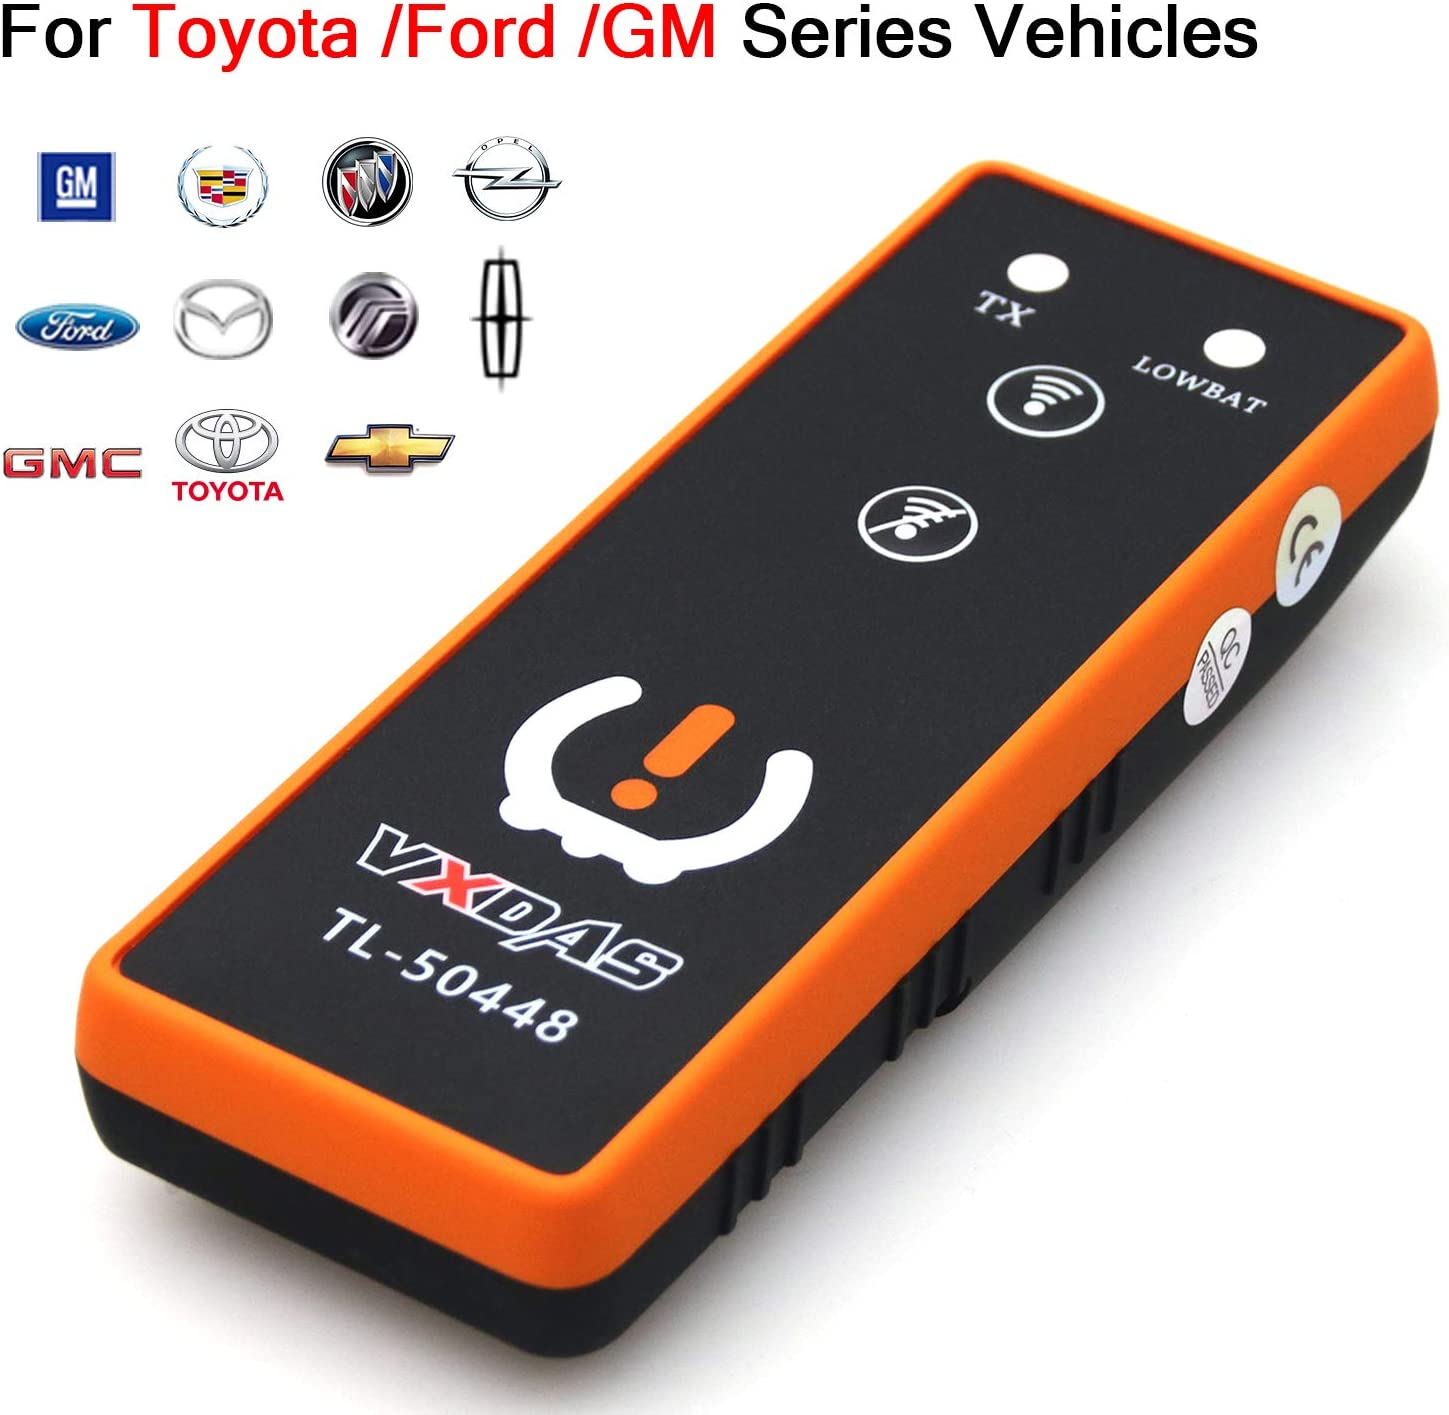 VXDAS 3IN1 TPMS Relearn Tool for Toyota GM and Ford Super TL50448 Tire Pressure Monitor Sensor TPMS Reset Tool 2020 Edition